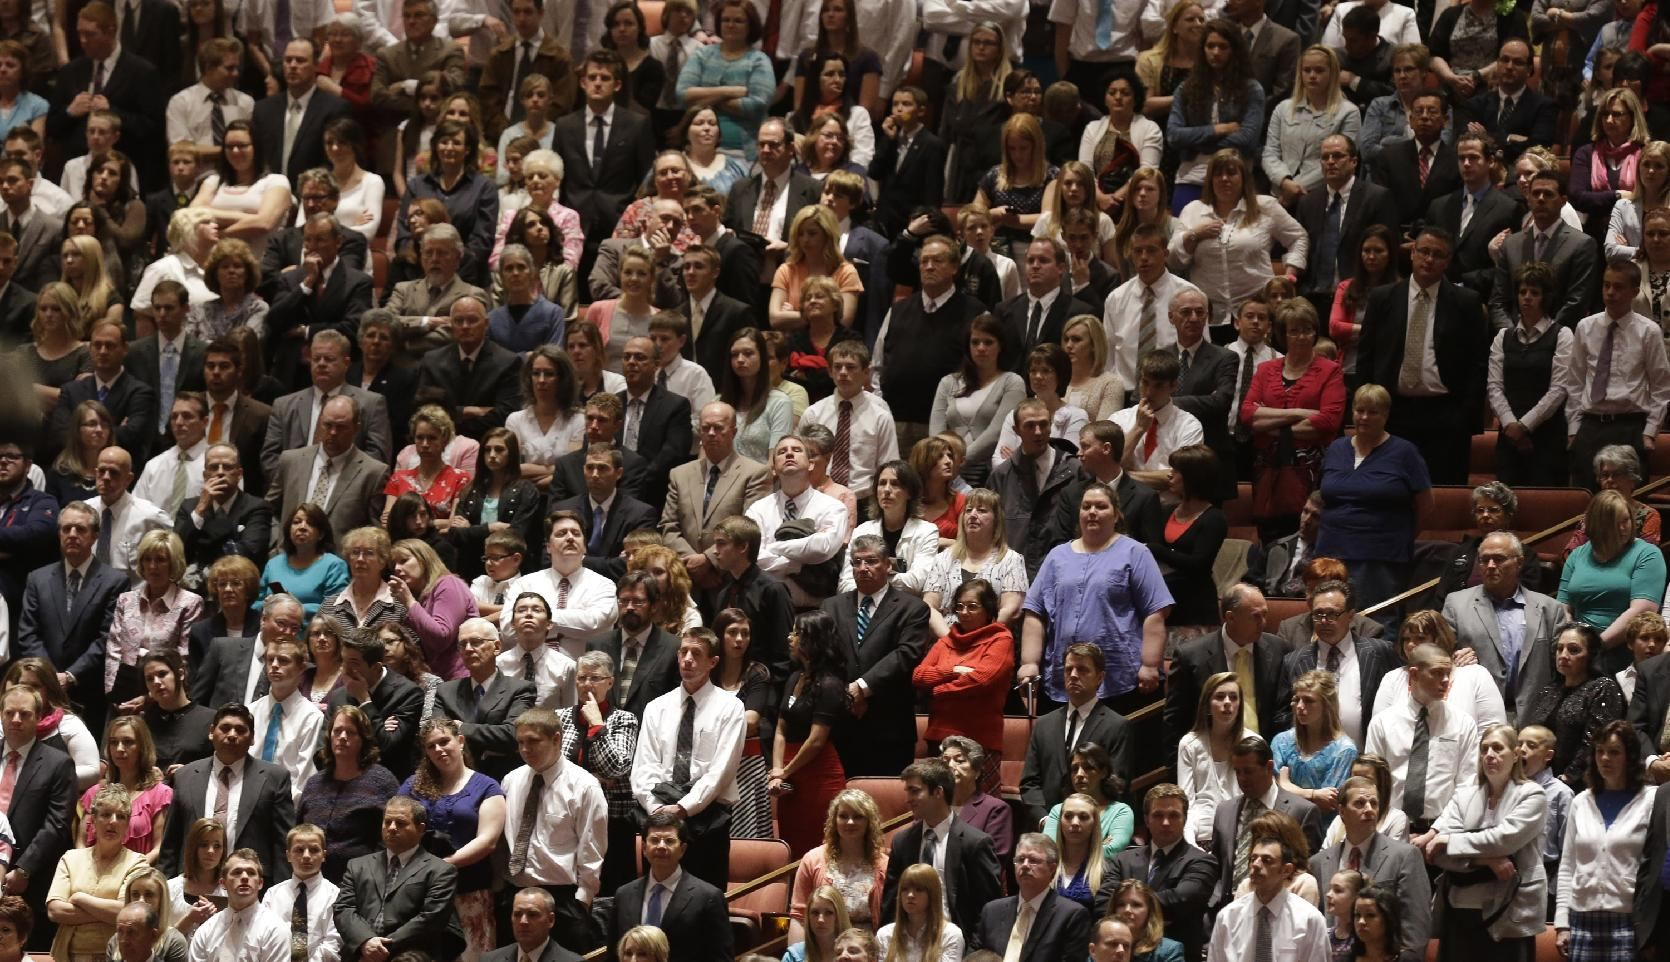 Annual General Conference of The Church of Jesus Christ of Latter